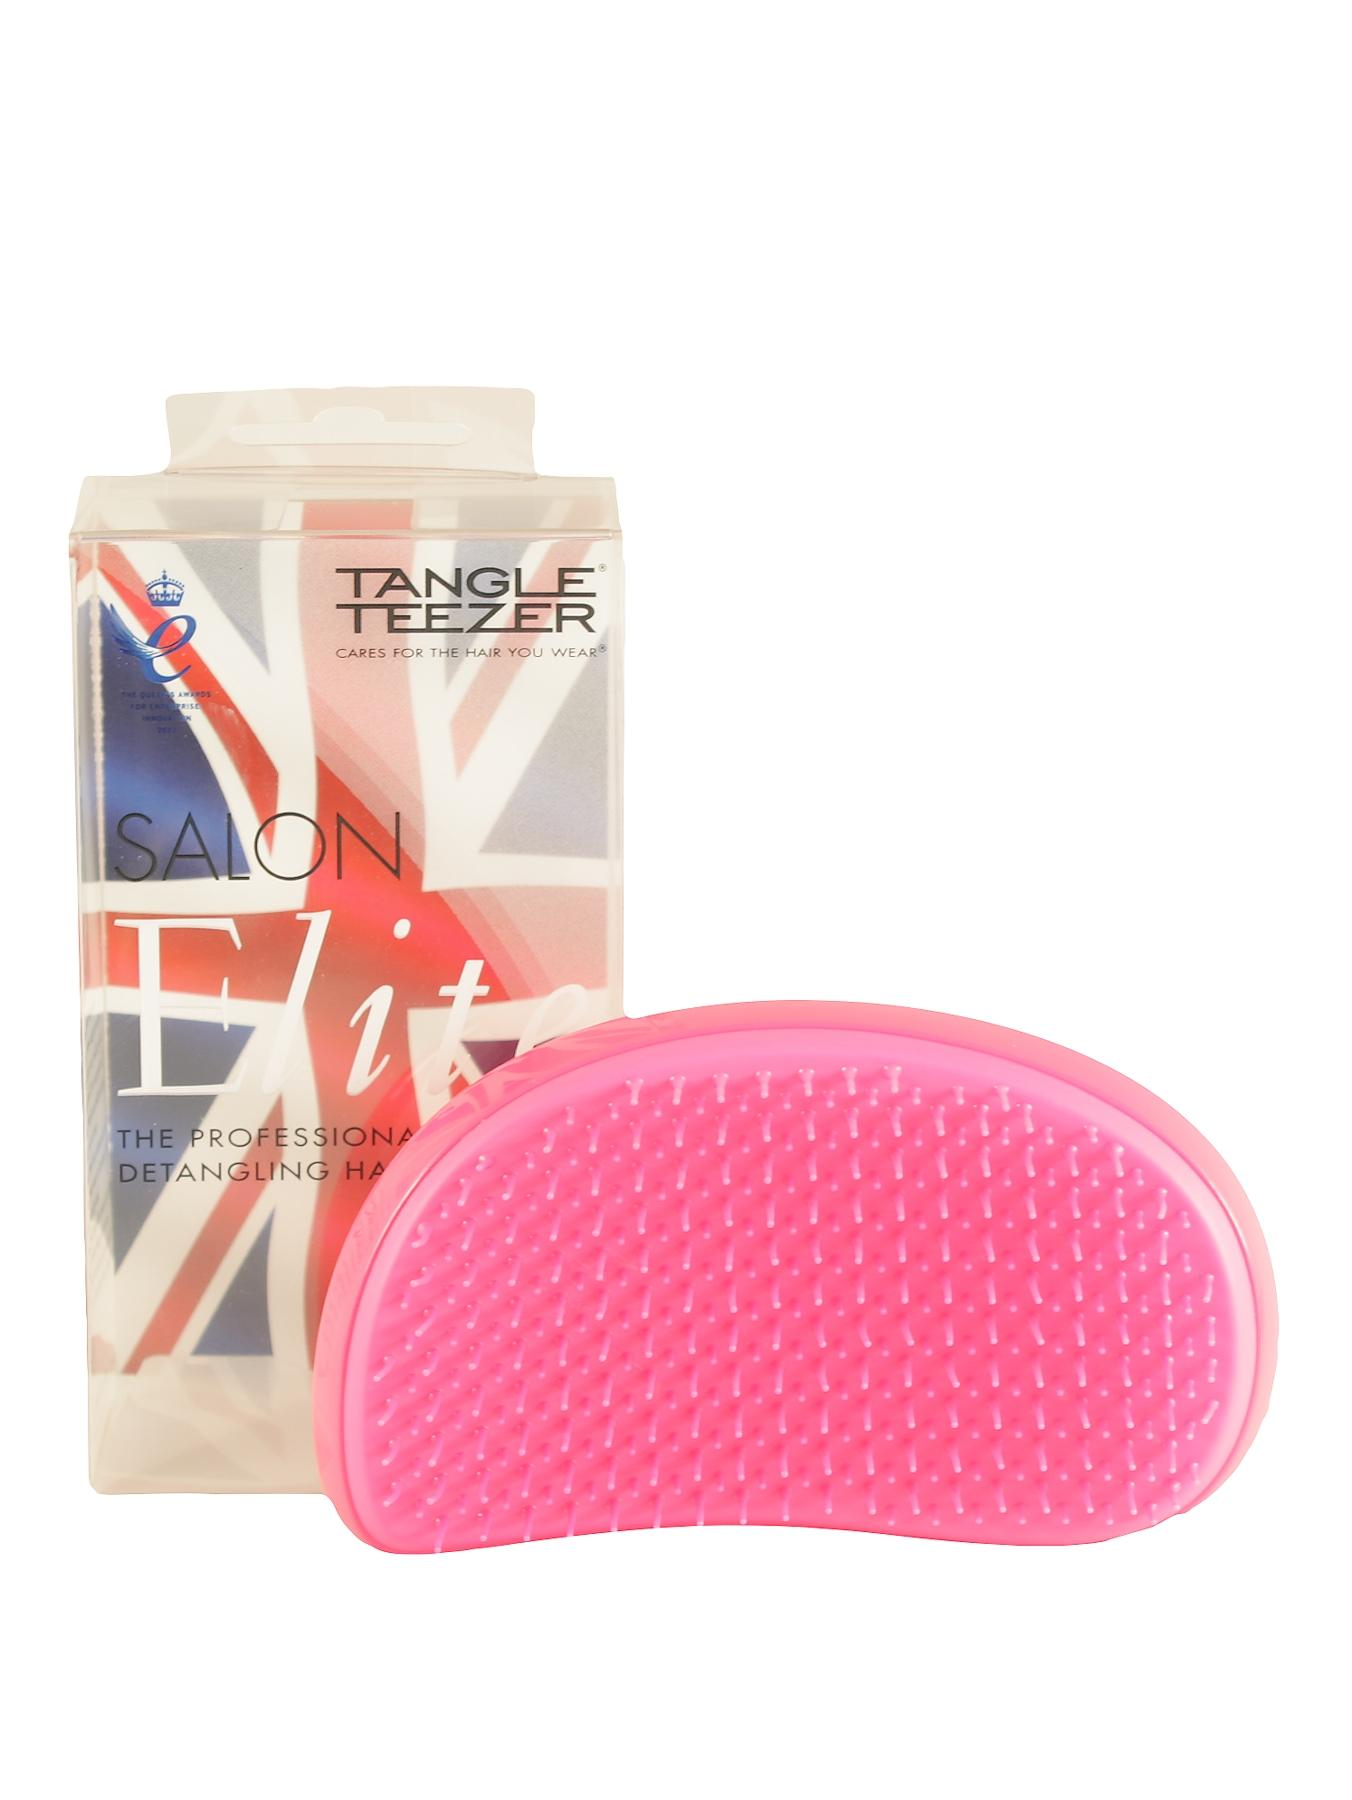 TANGLE TEEZER Salon Elite - Pink, Pink,Purple,Black,Orange,Blue